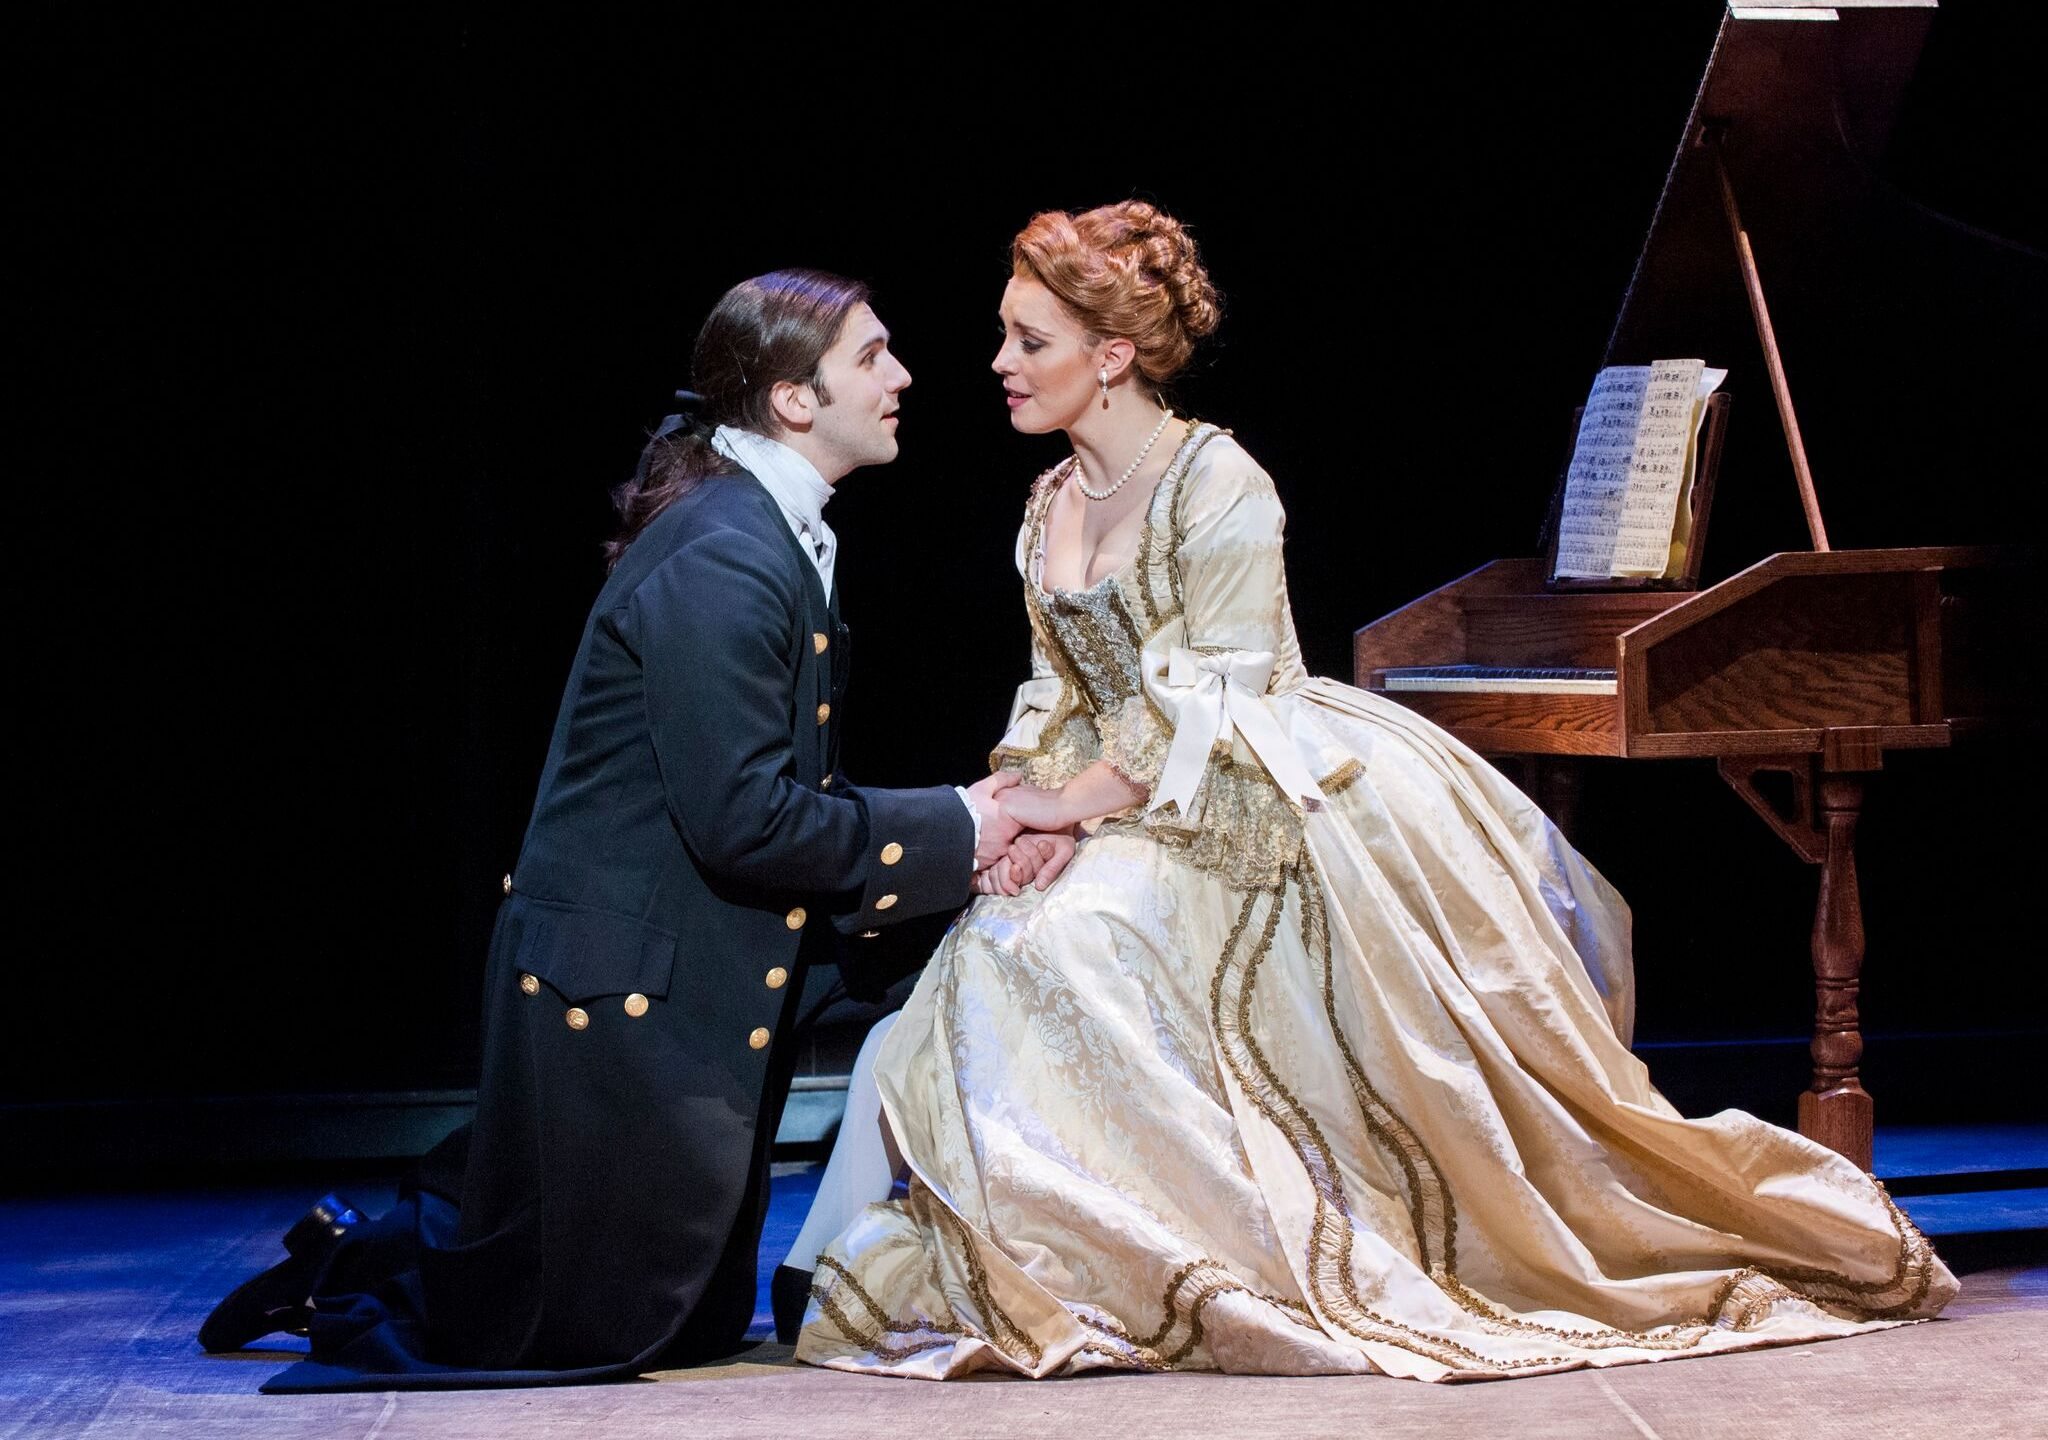 Jacob Shipley as John Newton with Eleanor Todd as Mary Catlett. Photo by Stan Barouh_preview copy_602830